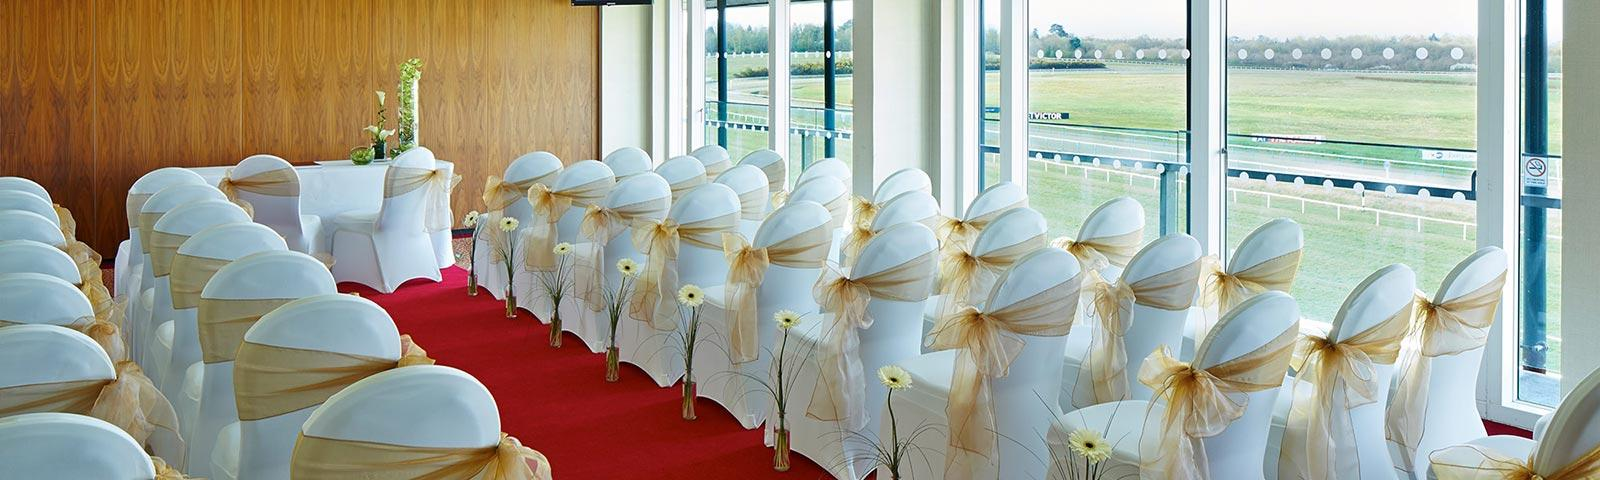 Rows of chairs set up in a room, dressed up for a wedding.